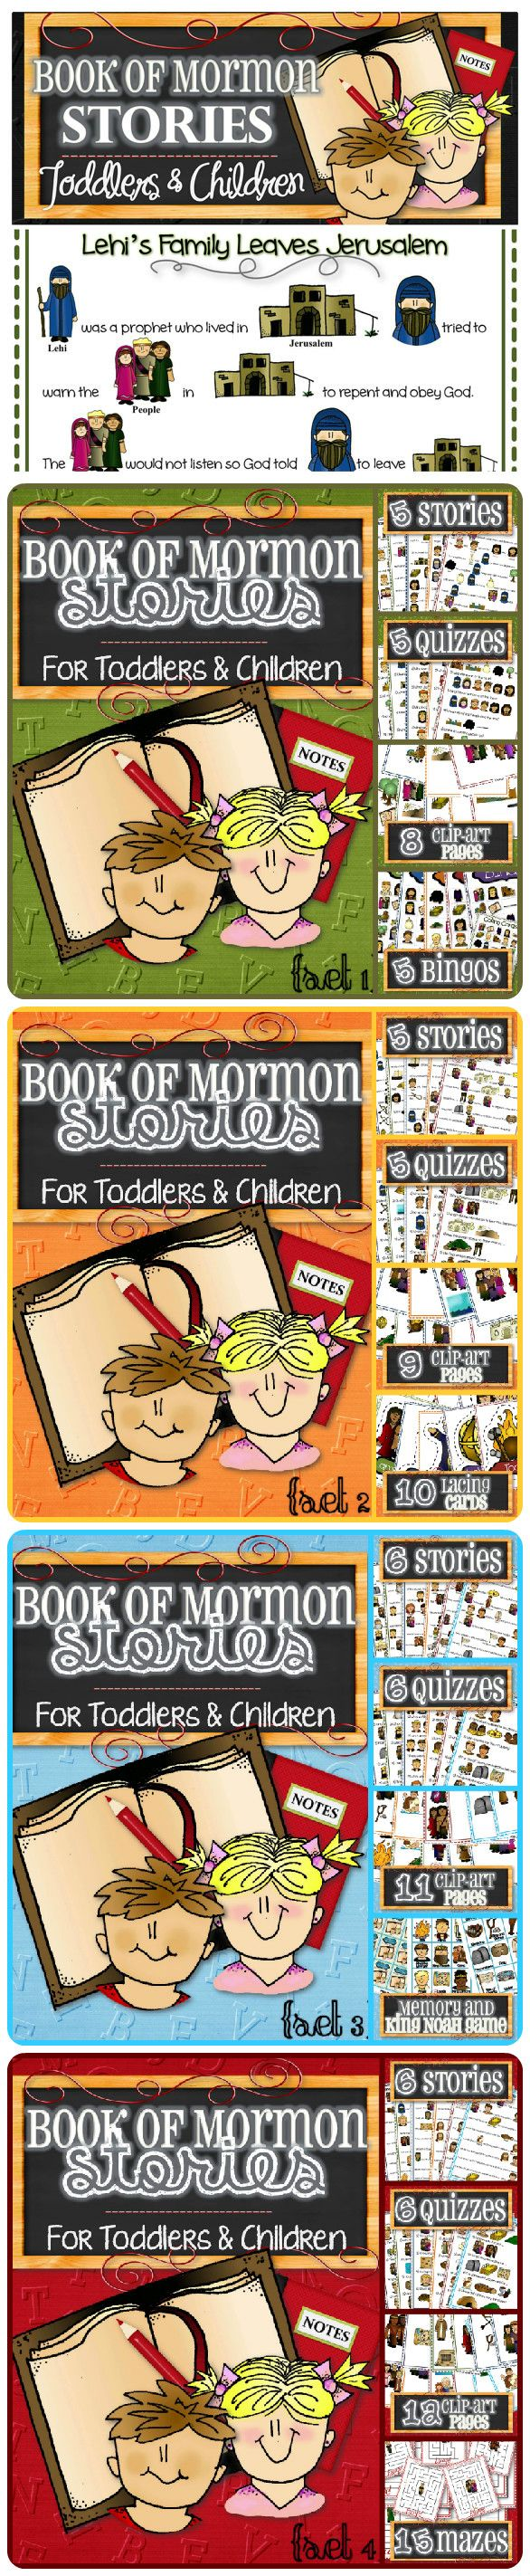 """Complete Book of Mormon Stories (For Toddlers and Children) - INSTANT DOWNLOAD - An easy and fun way to teach toddlers and children Book of Mormon Stories. These colorful pages with over 20 stories make it simple, interactive and keep little ones engaged!  Each Set Includes: - Simplified Stories - Fun Quizzes - Clip-art and Graphics - Games and Activities - Character Guide. Get """"Lehi's Family Leaves Jerusalem"""" and quiz for FREE!"""